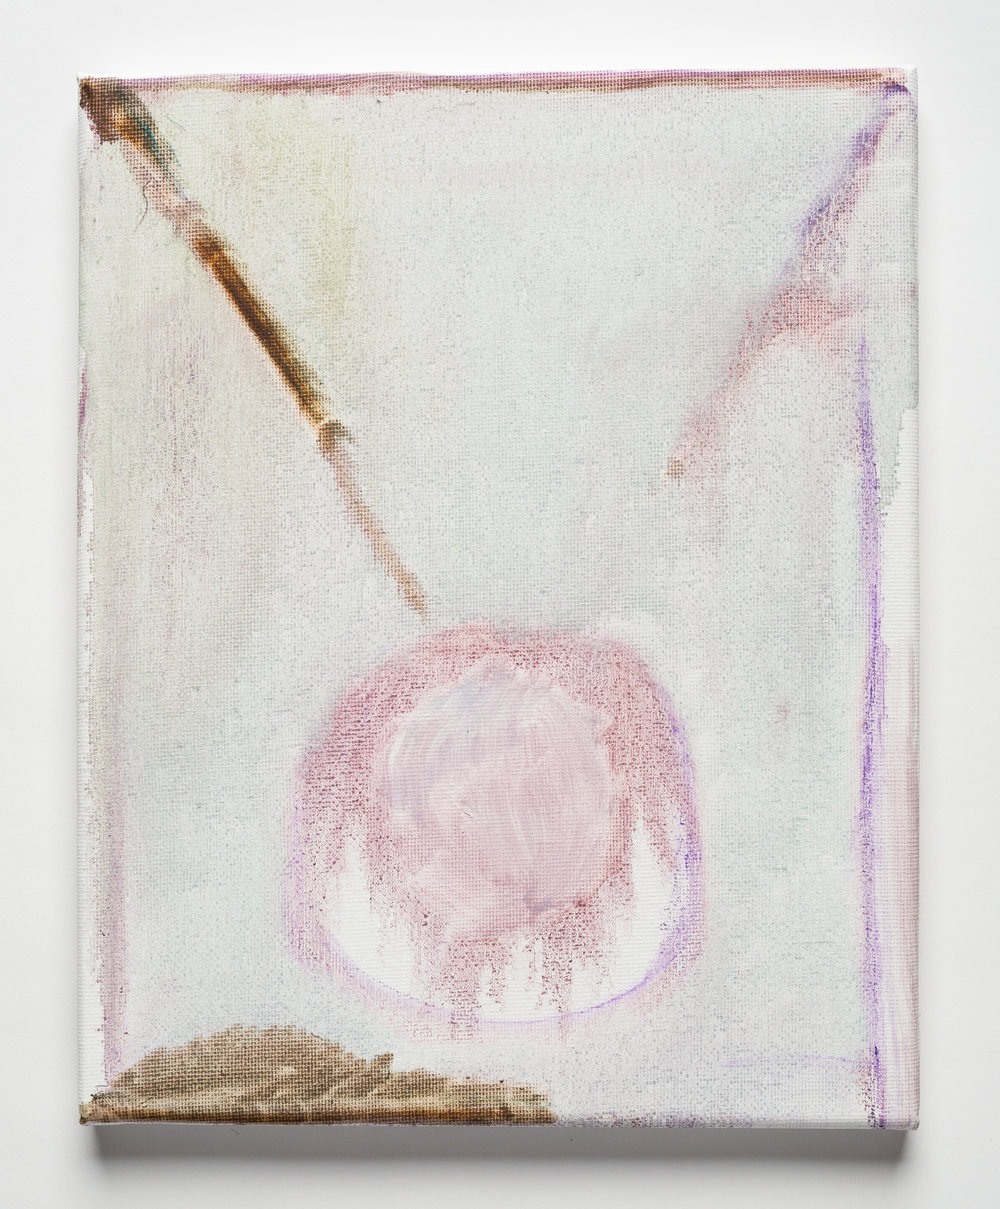 Sean Bluechel Untitled, 2016 oil on canvas 10 x 8 inches